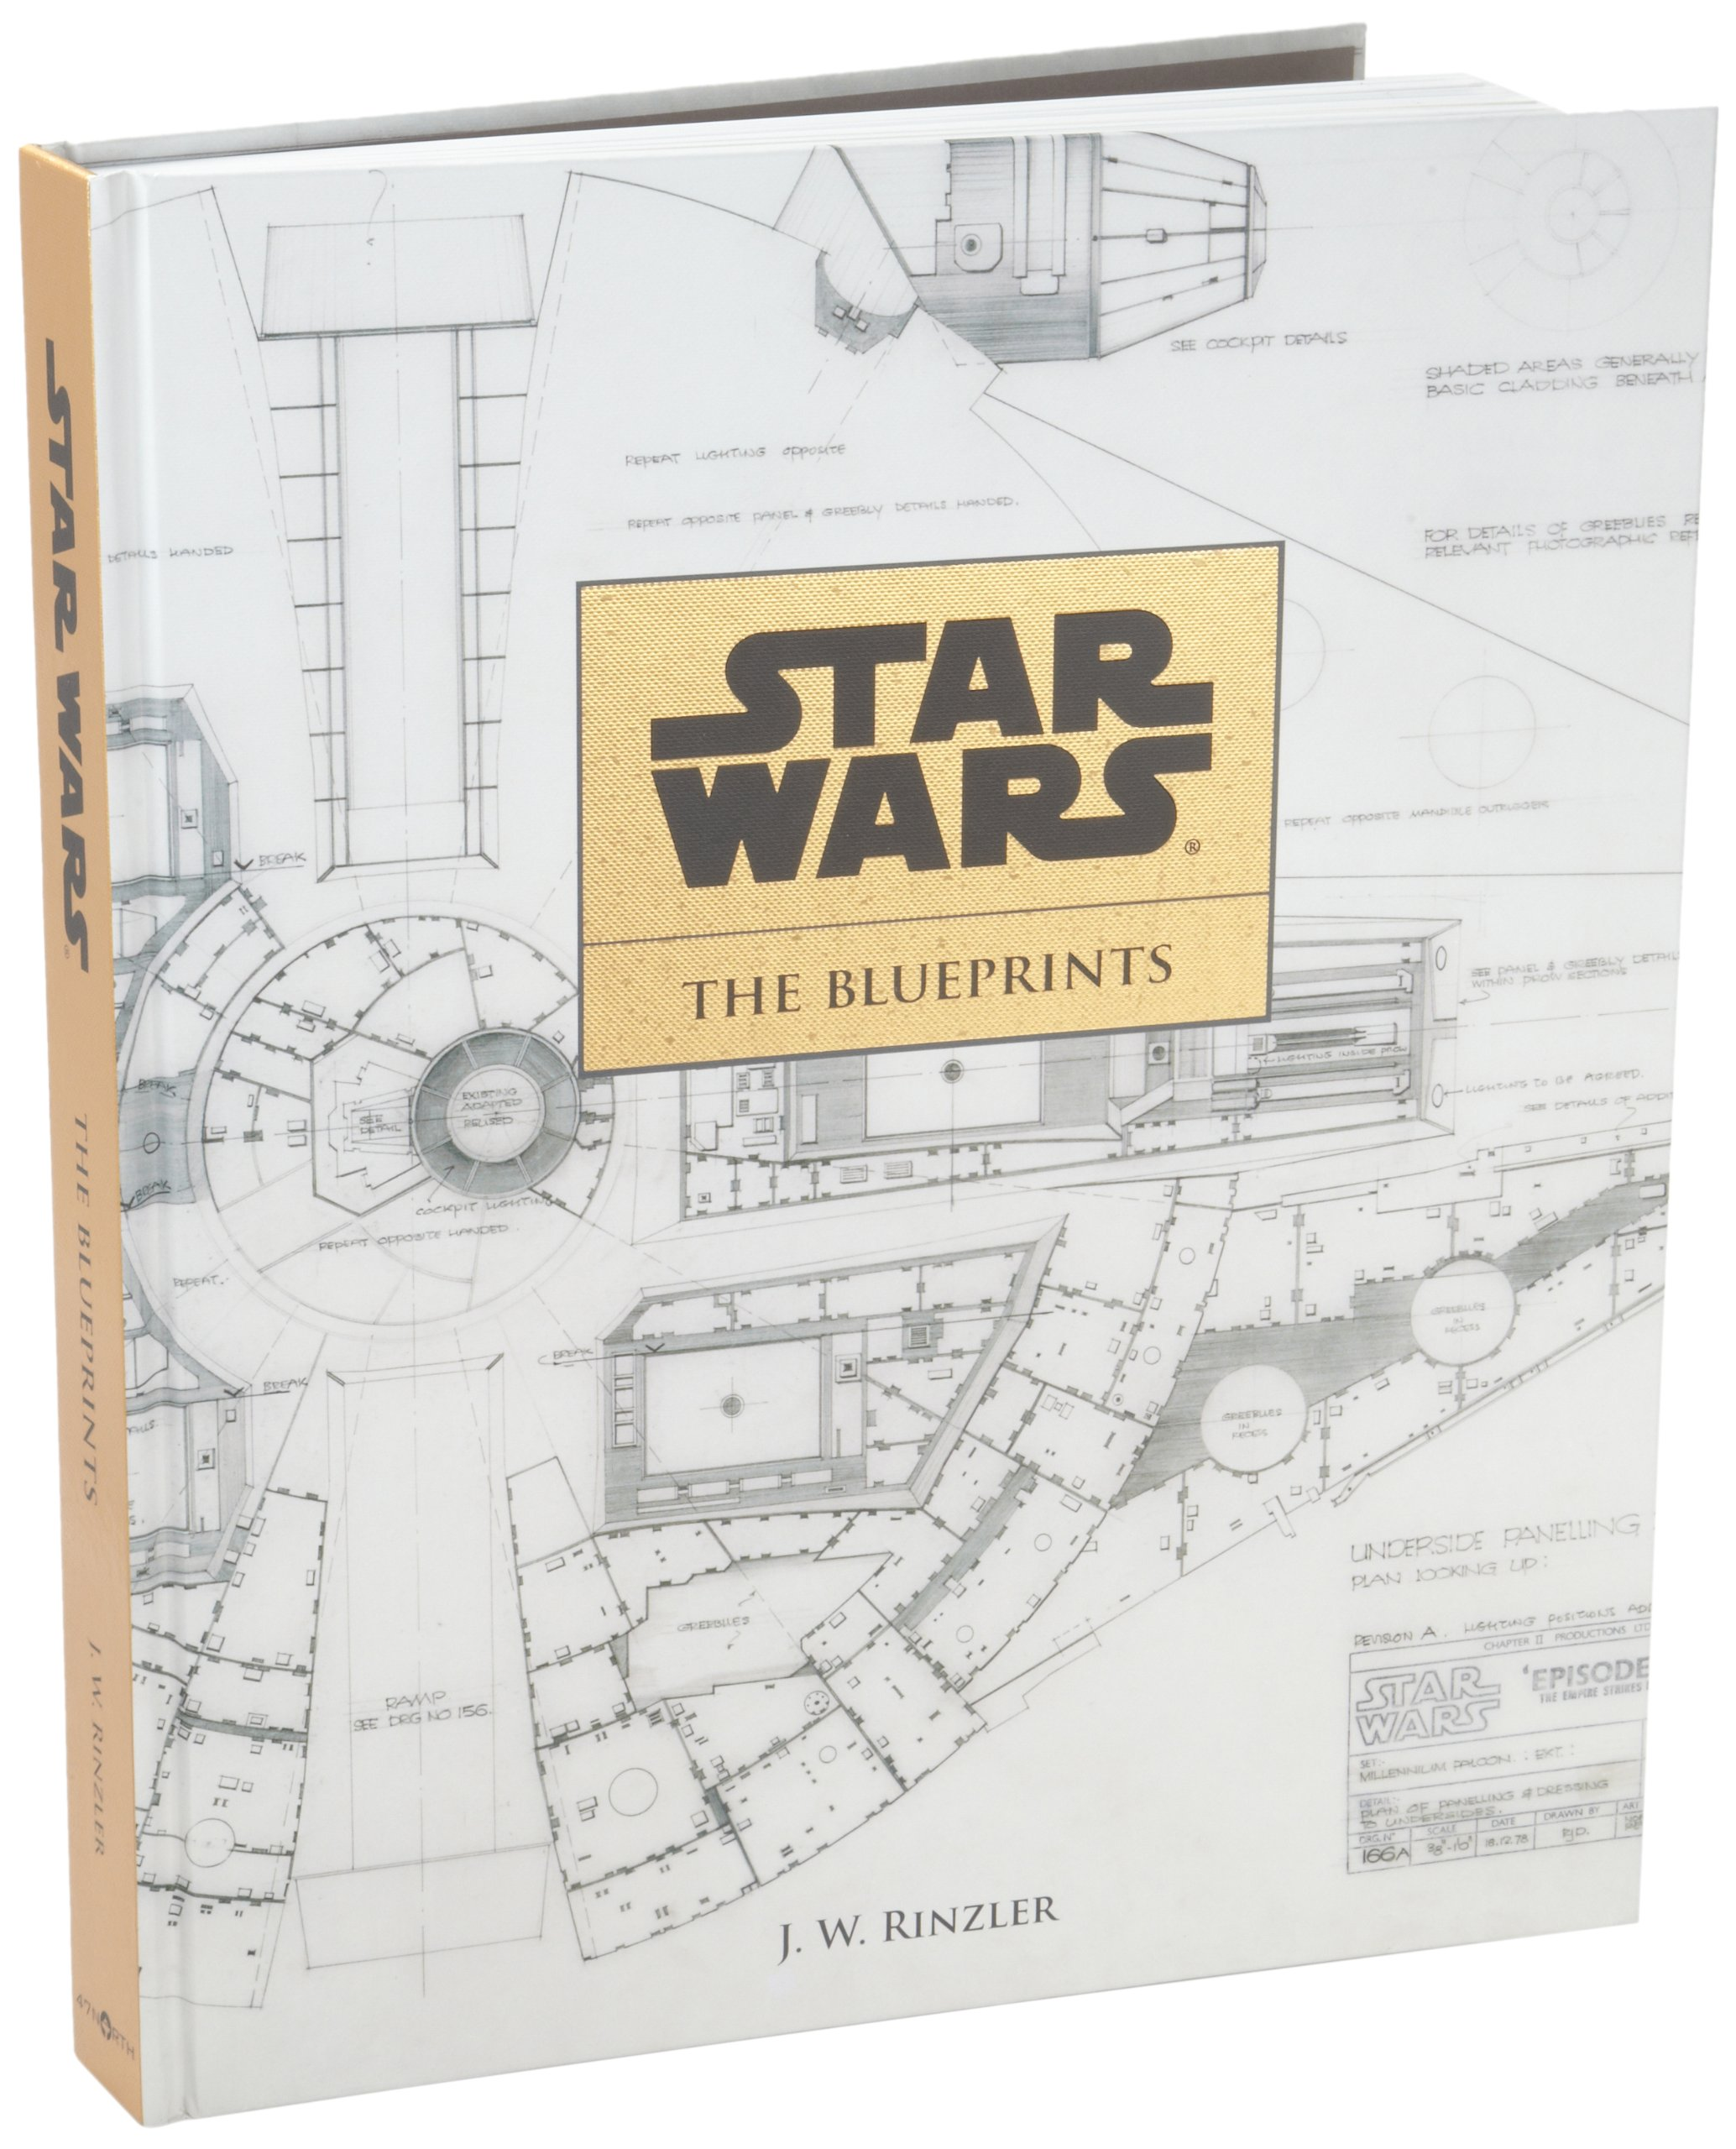 Star wars the blueprints wookieepedia fandom powered by wikia malvernweather Gallery